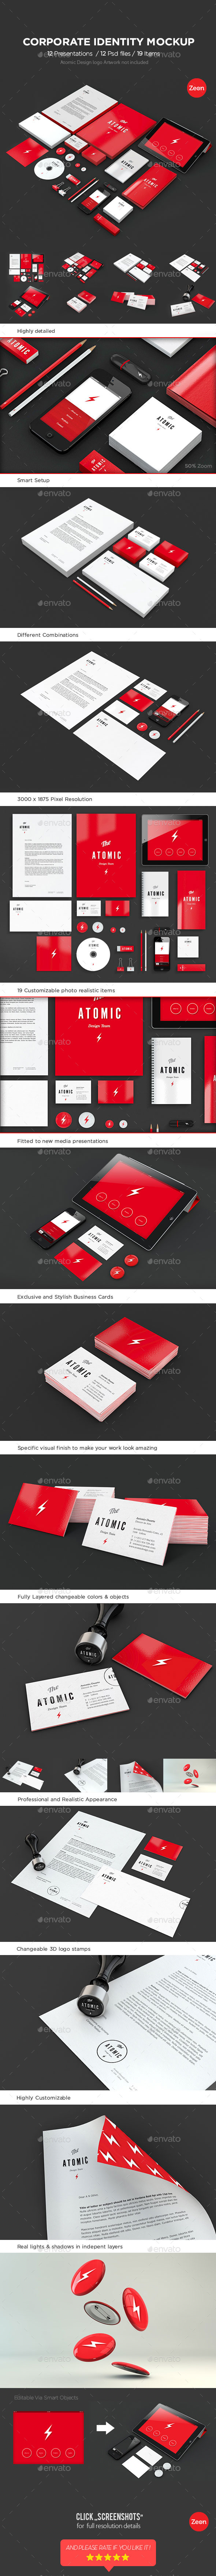 Corporate Identity Mockup Bundle - Print Product Mock-Ups